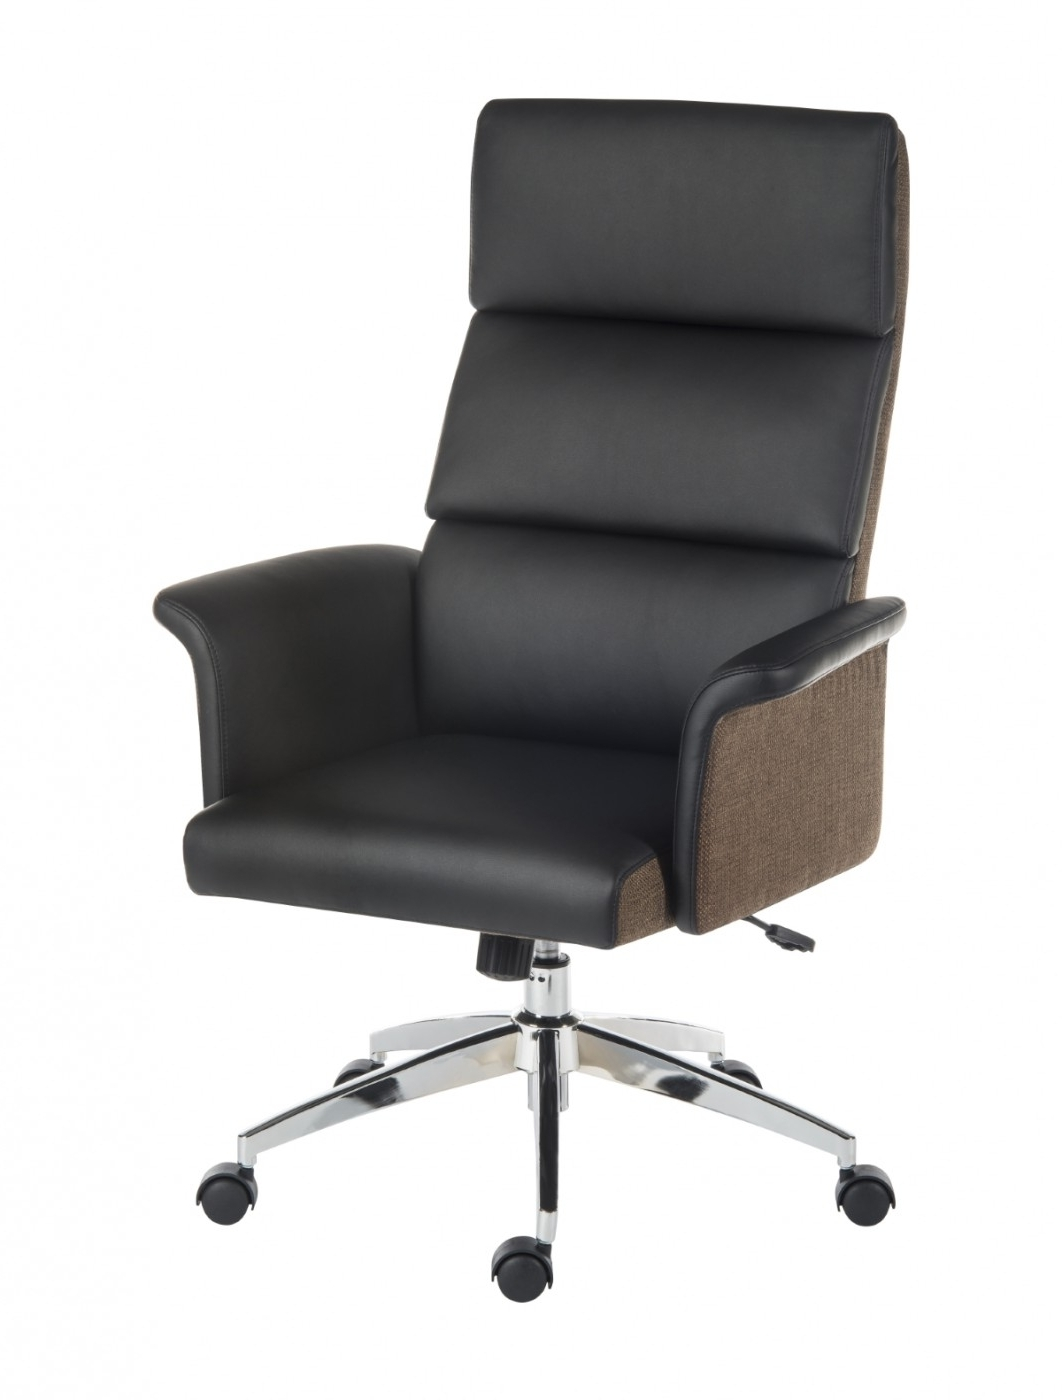 Ergonomic Executive Office Chairs Throughout Well Known Furniture : Executive Office Chair Ergonomic Office Chair' Big And (View 8 of 20)